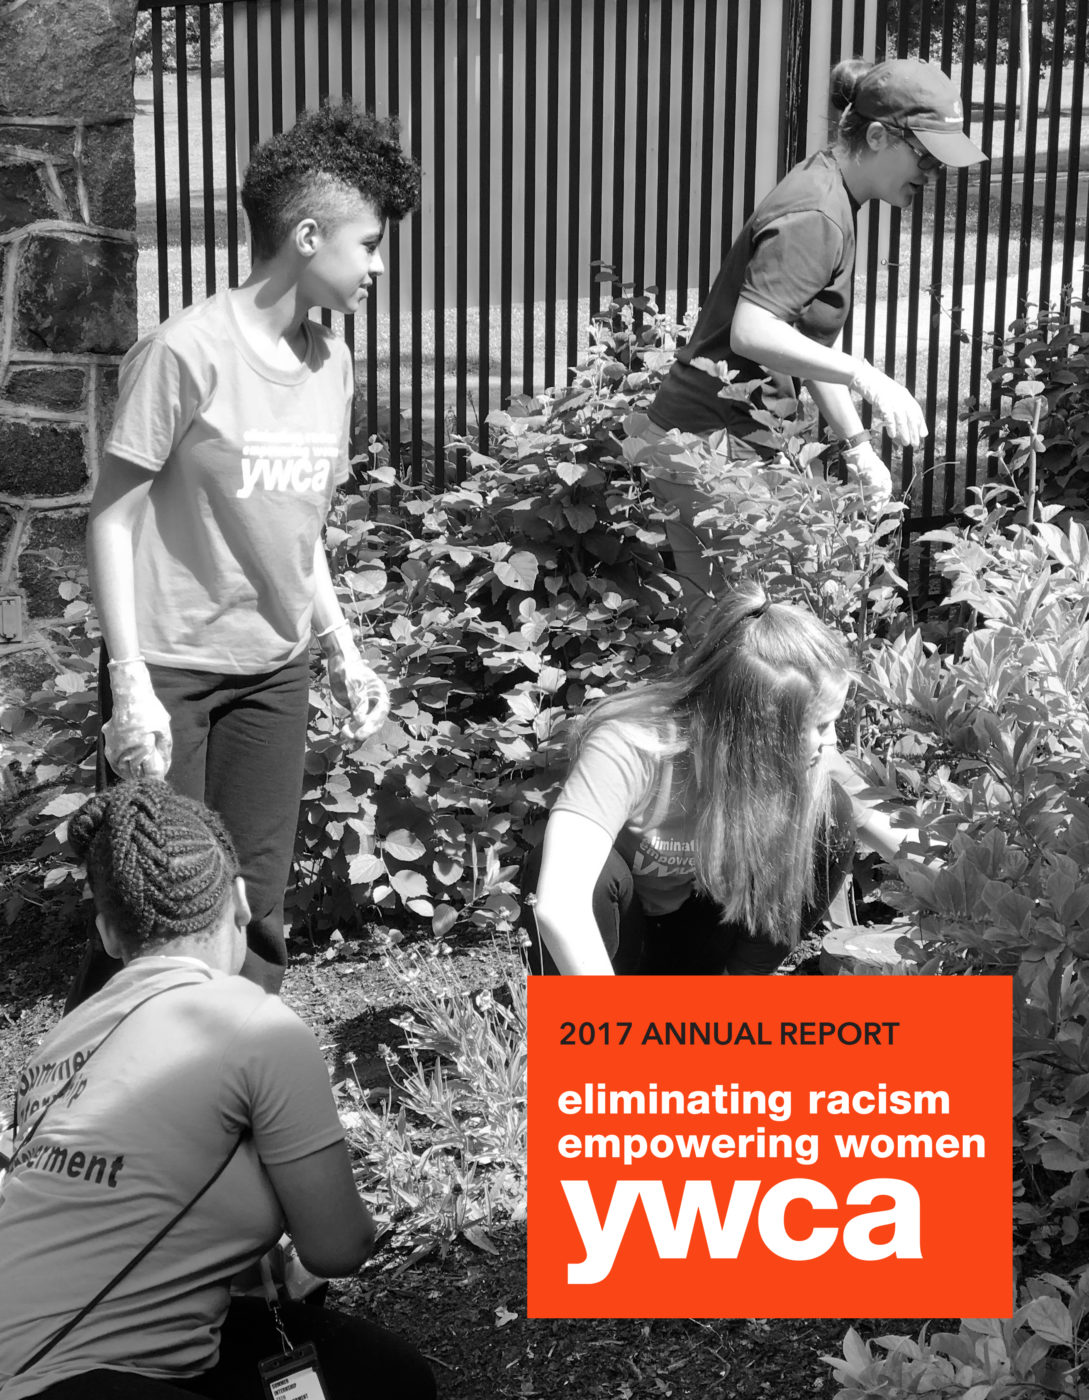 YWCA Annual Report